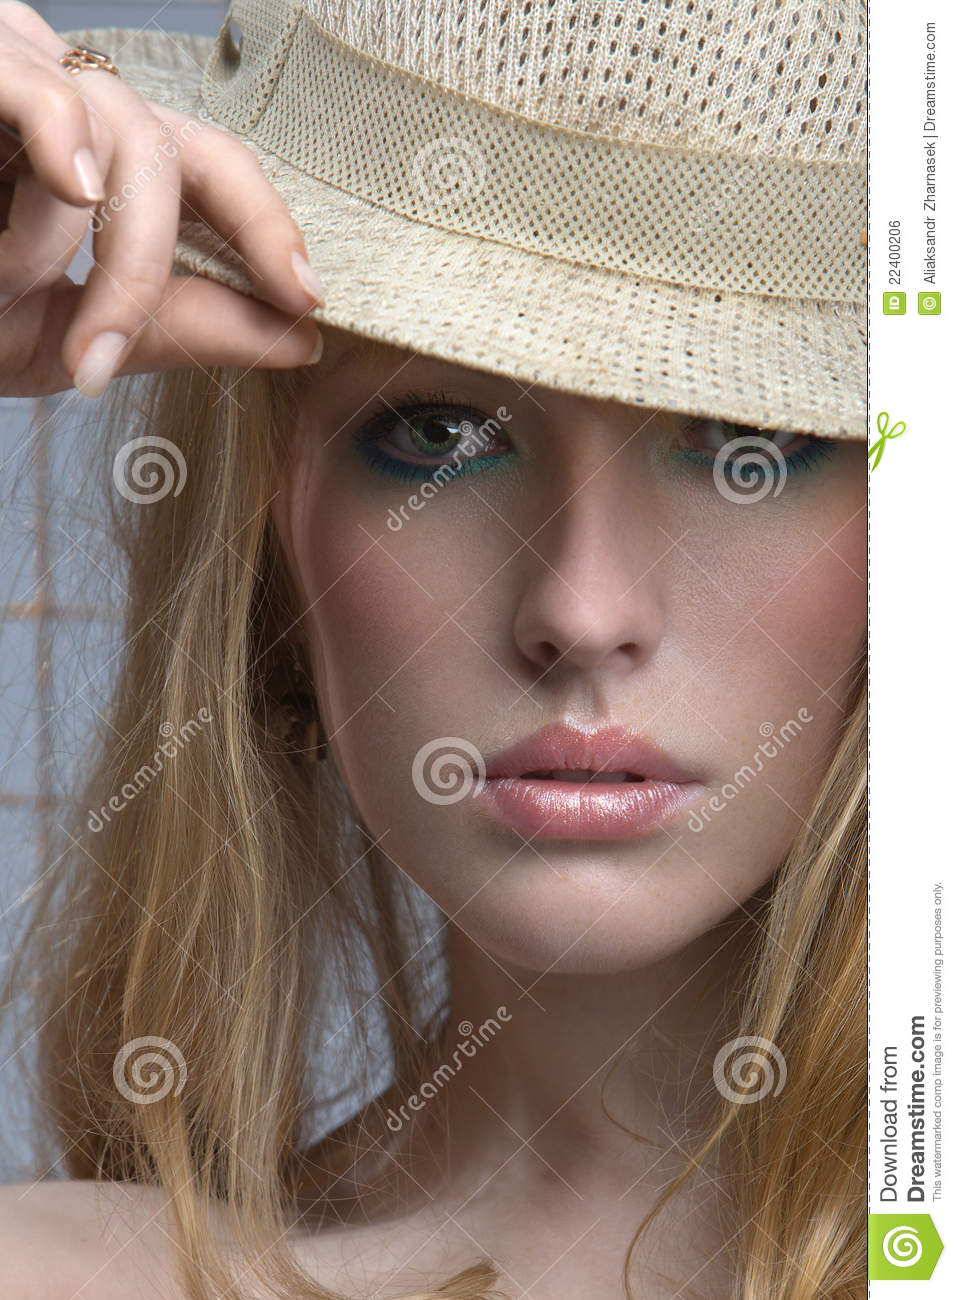 Sensual blonde woman peers out from under the brim